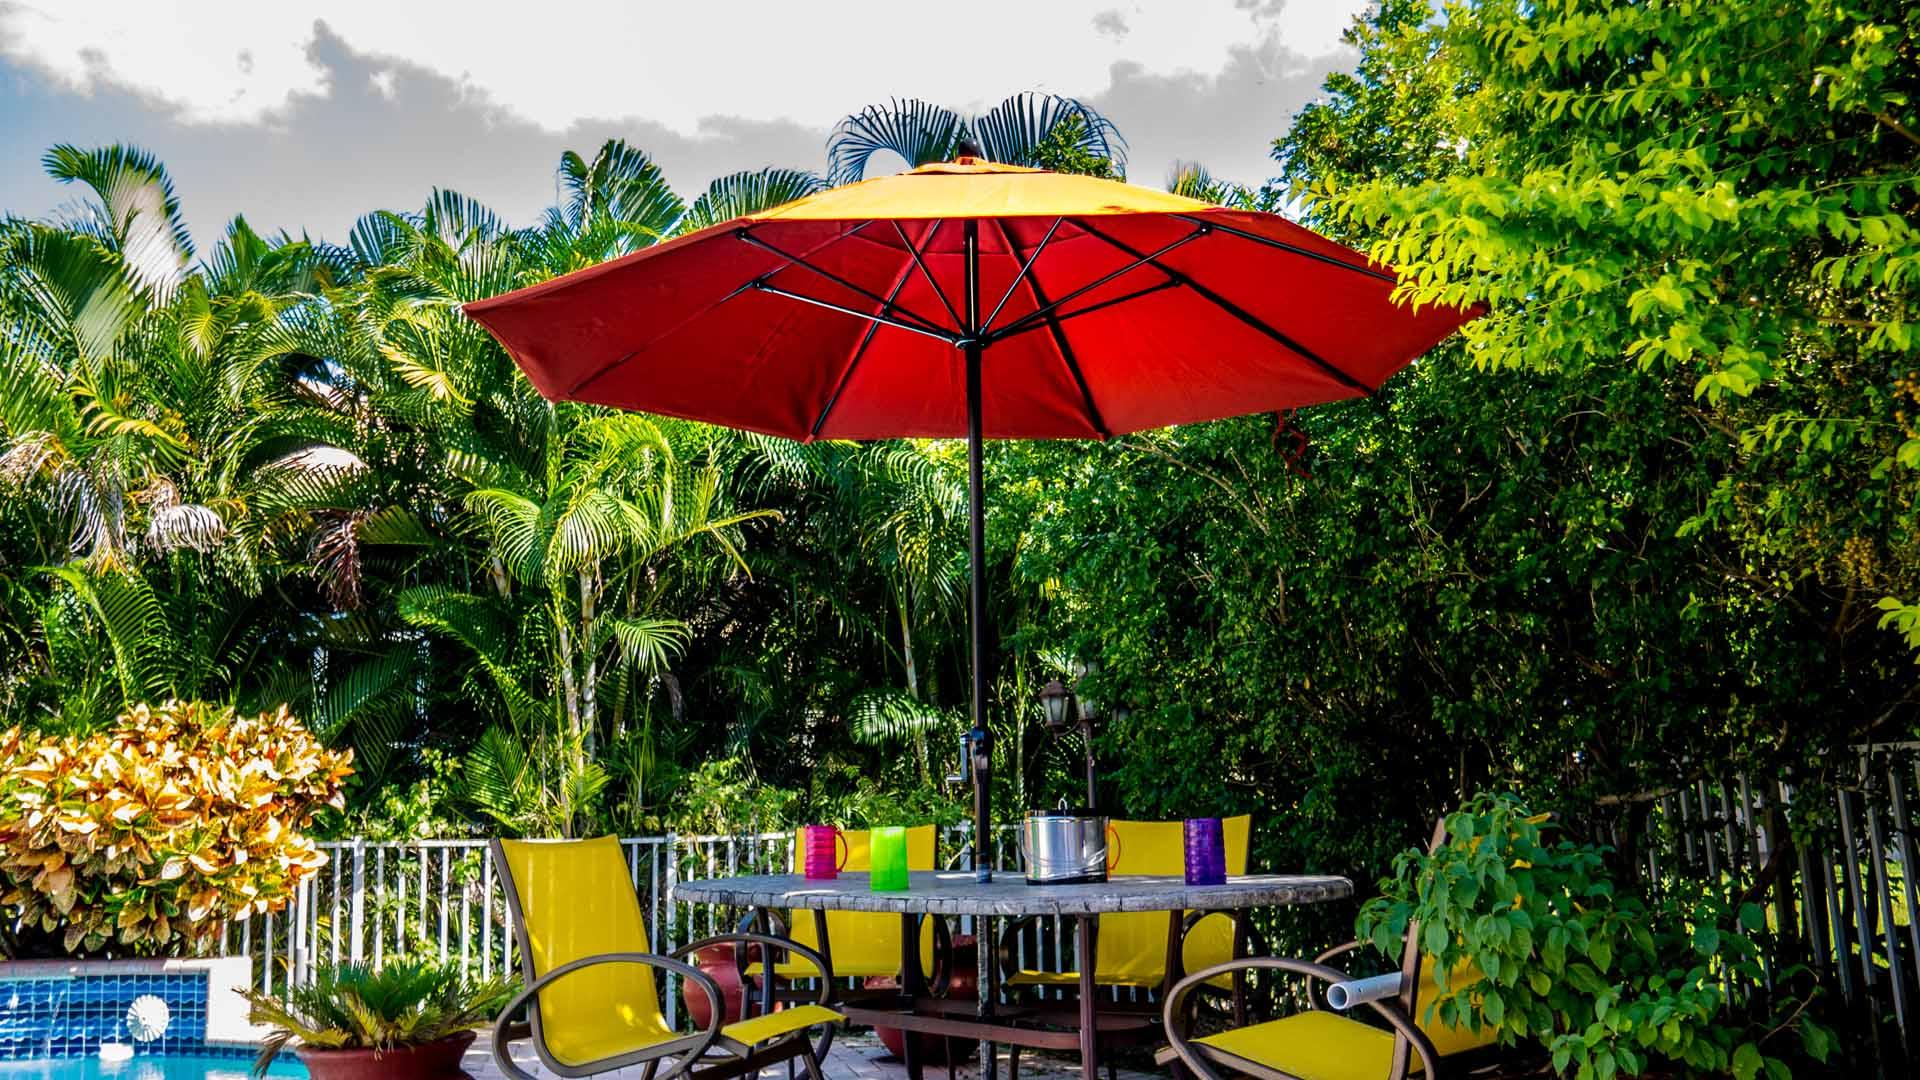 Patio Umbrella 7.50 to 9.00 Ft by 8 Ribs, Crank or Pulley, Fiberglass Ribs, Canvas, Aluminum Pole (1 or 2 Piece Pole)